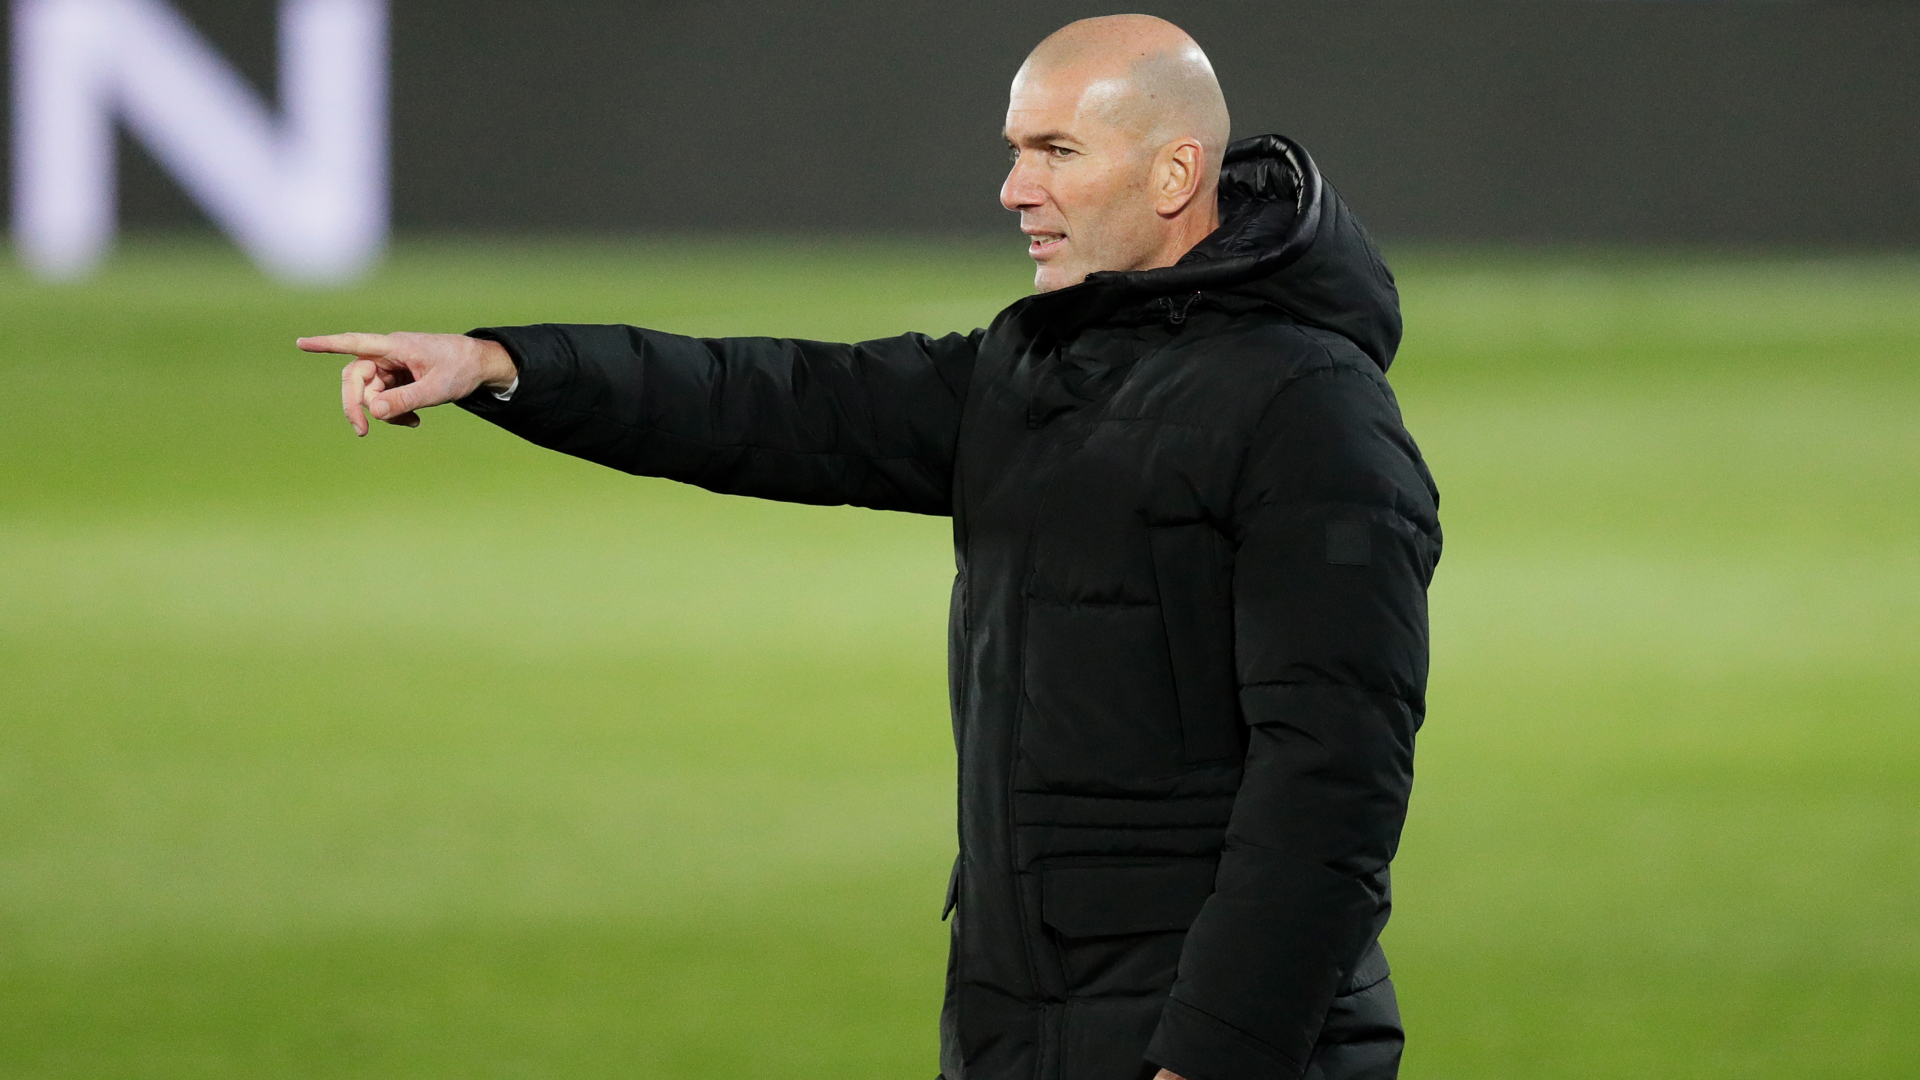 Butragueno: Everyone knows what Zidane means to us